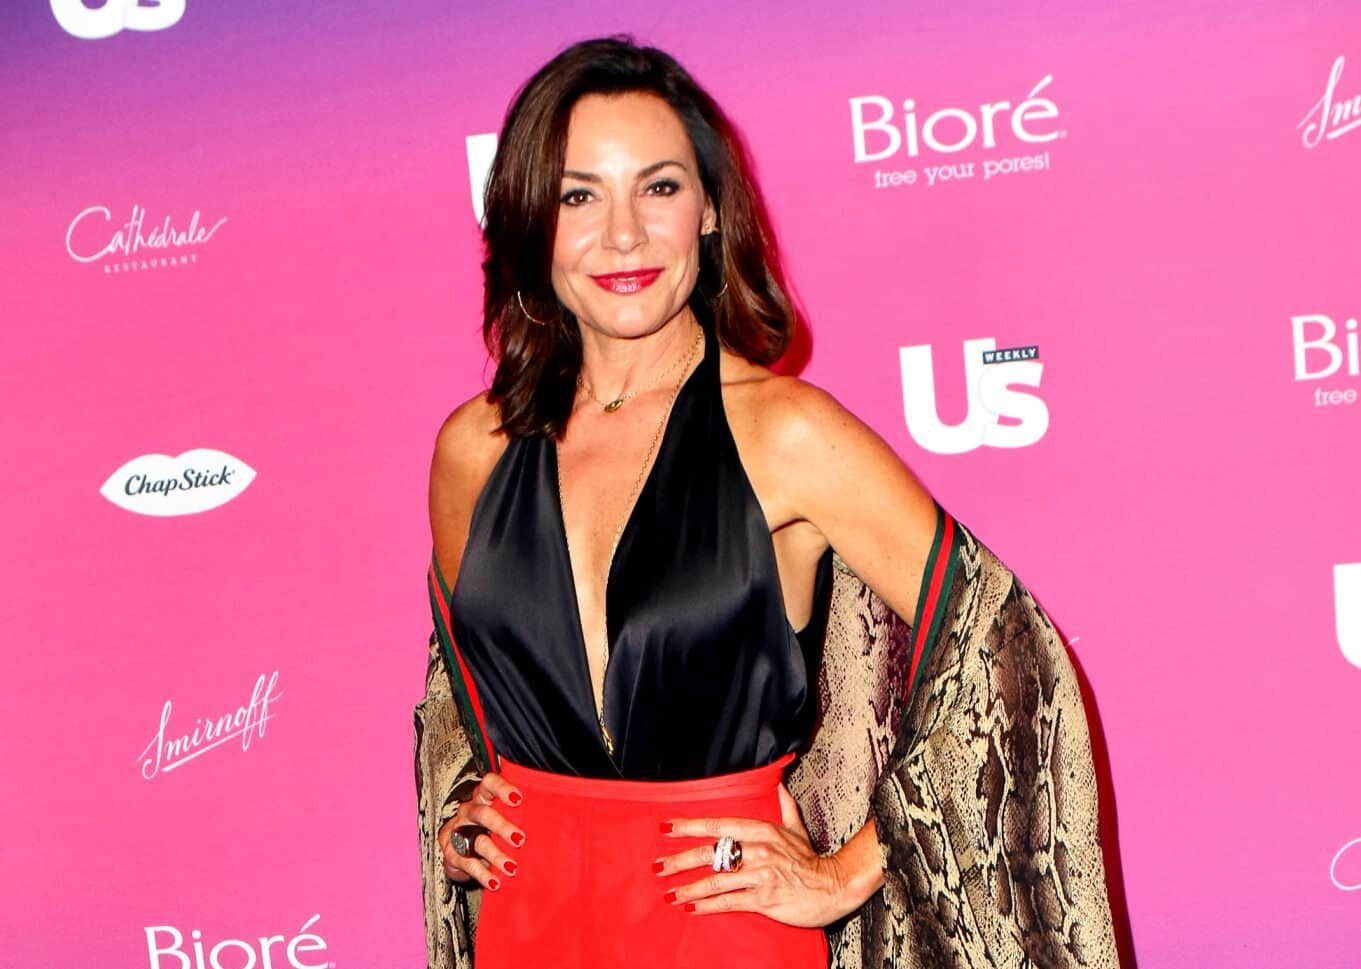 Luann de Lesseps Explains Why She's Selling Her $1.15 Million Home, RHONY Star Purchased Home Two Years Ago